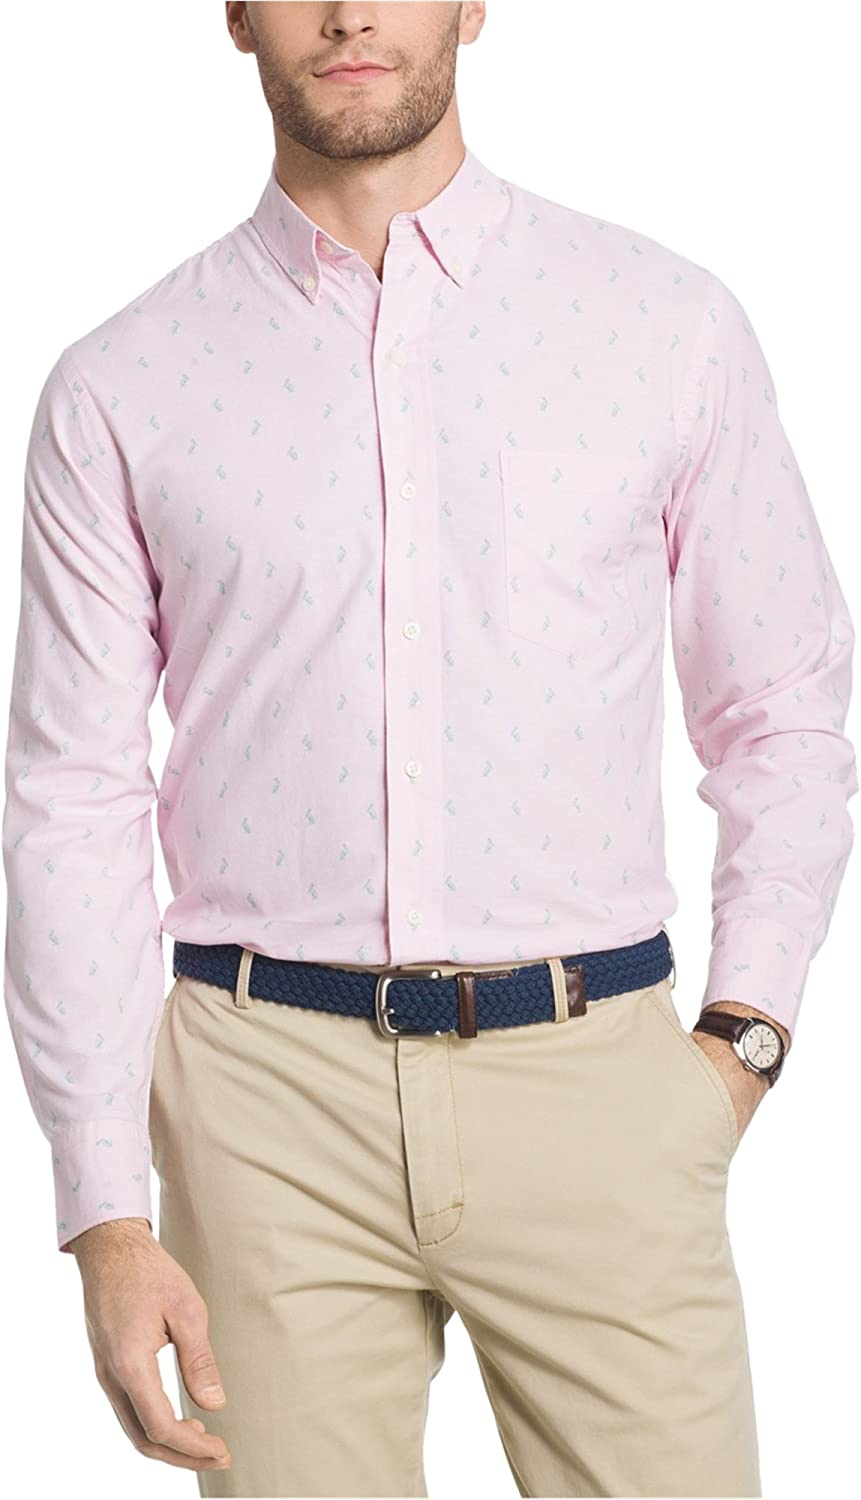 IZOD Mens Penguin Button Up Shirt, Pink, Small